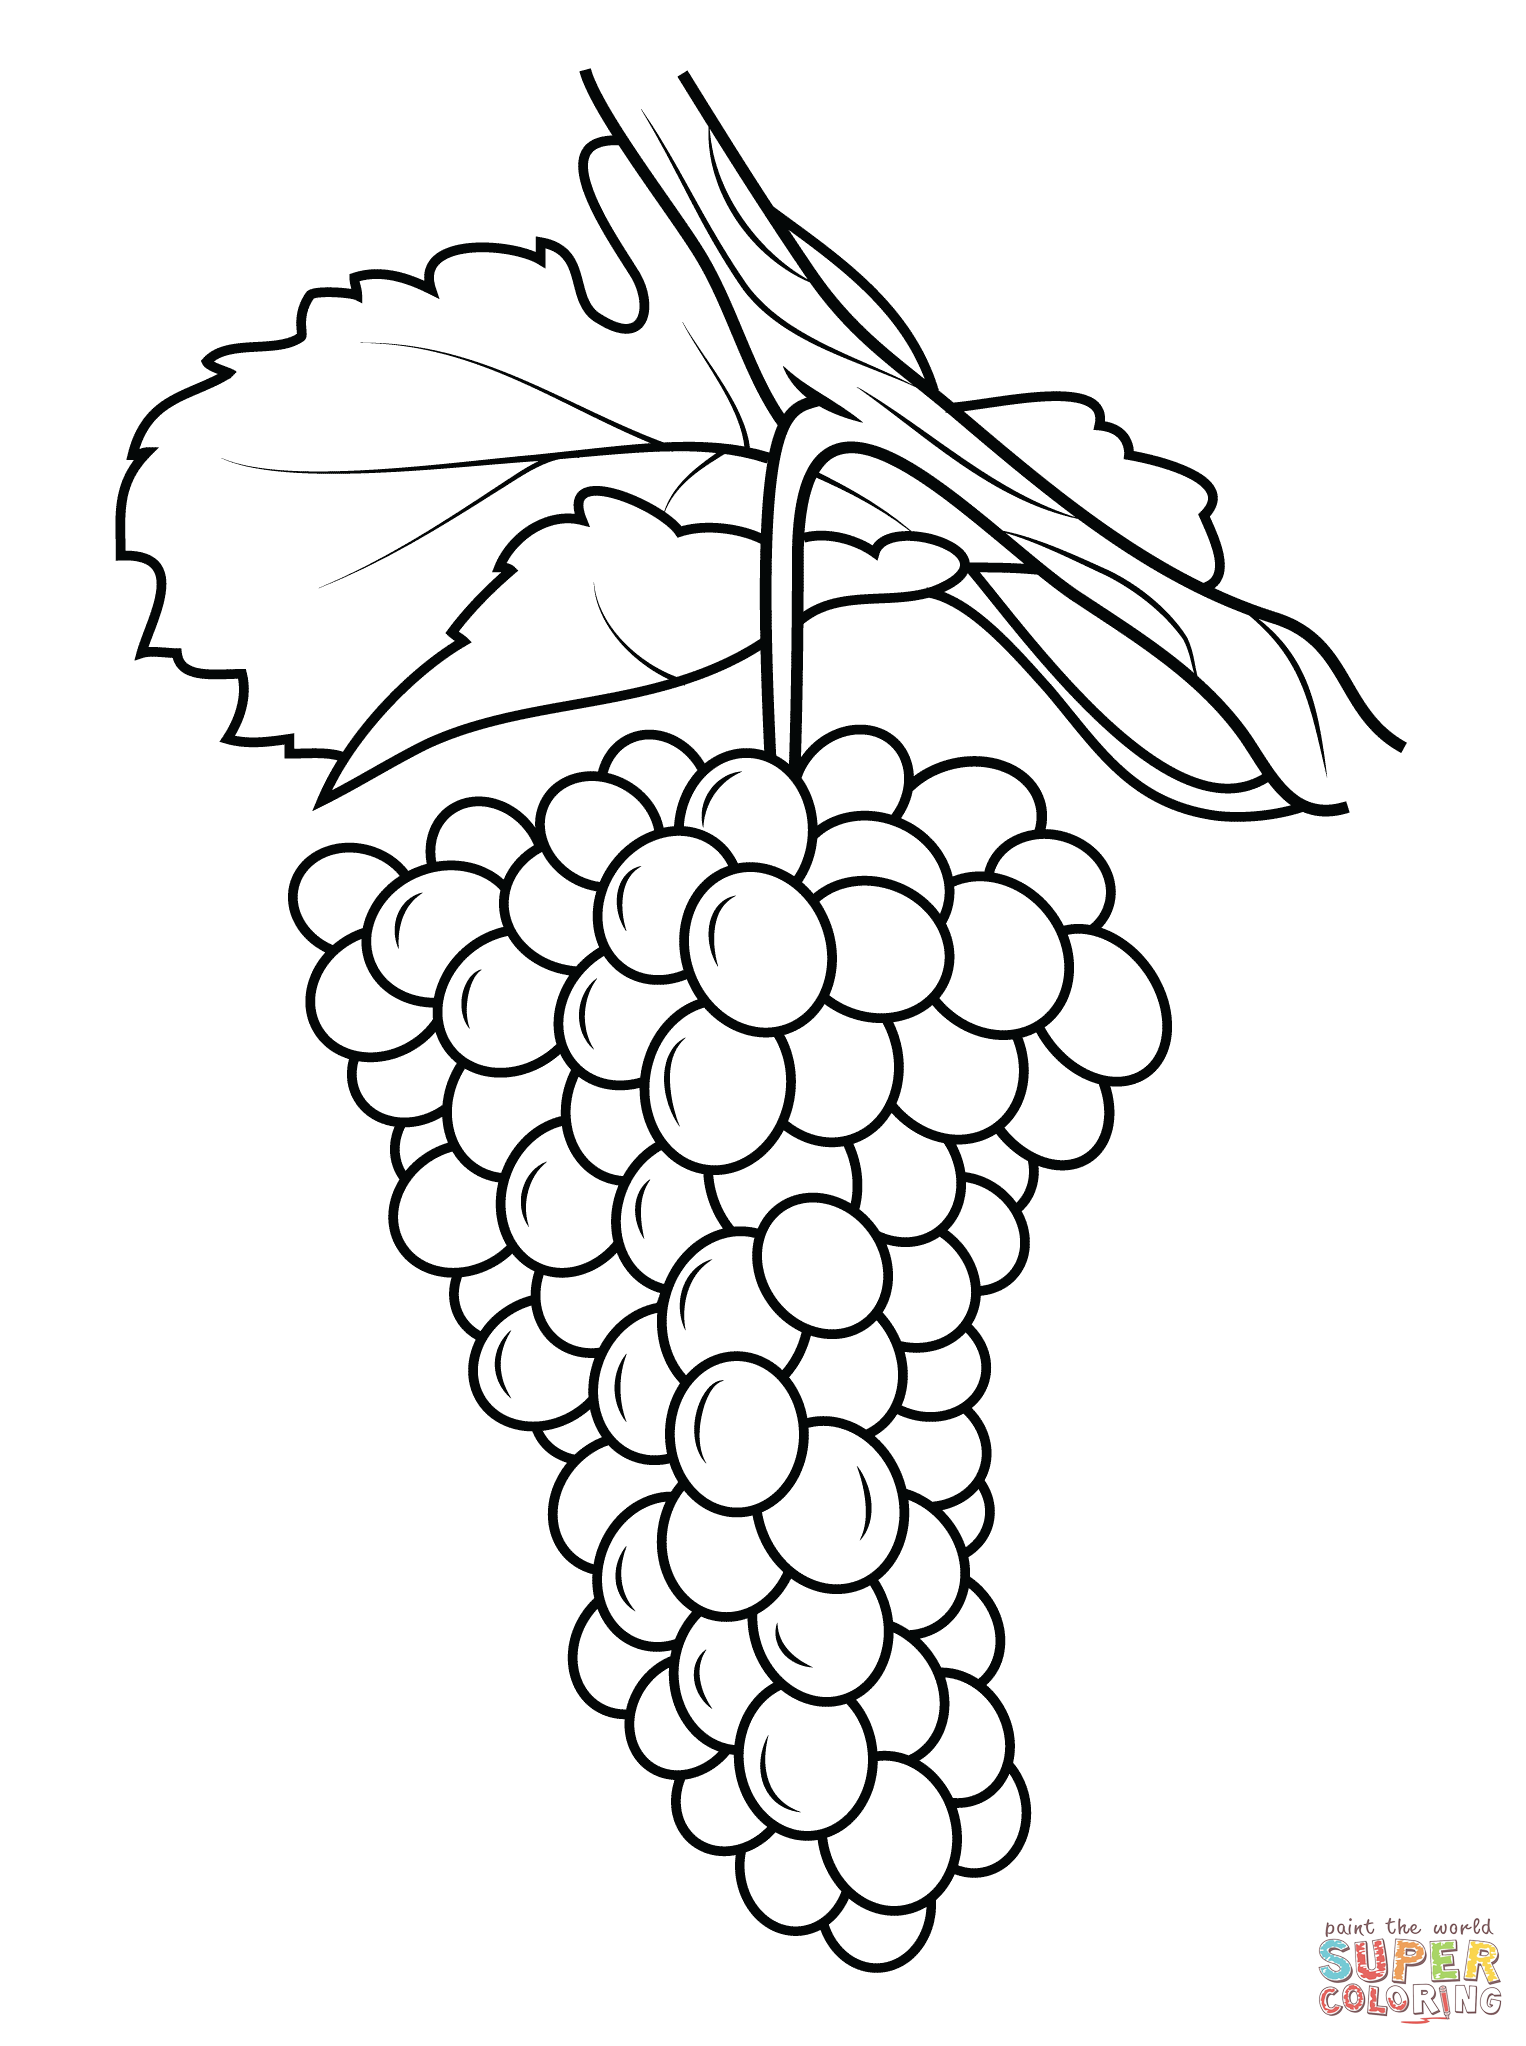 Raisins page coloring pages for Raisins coloring page